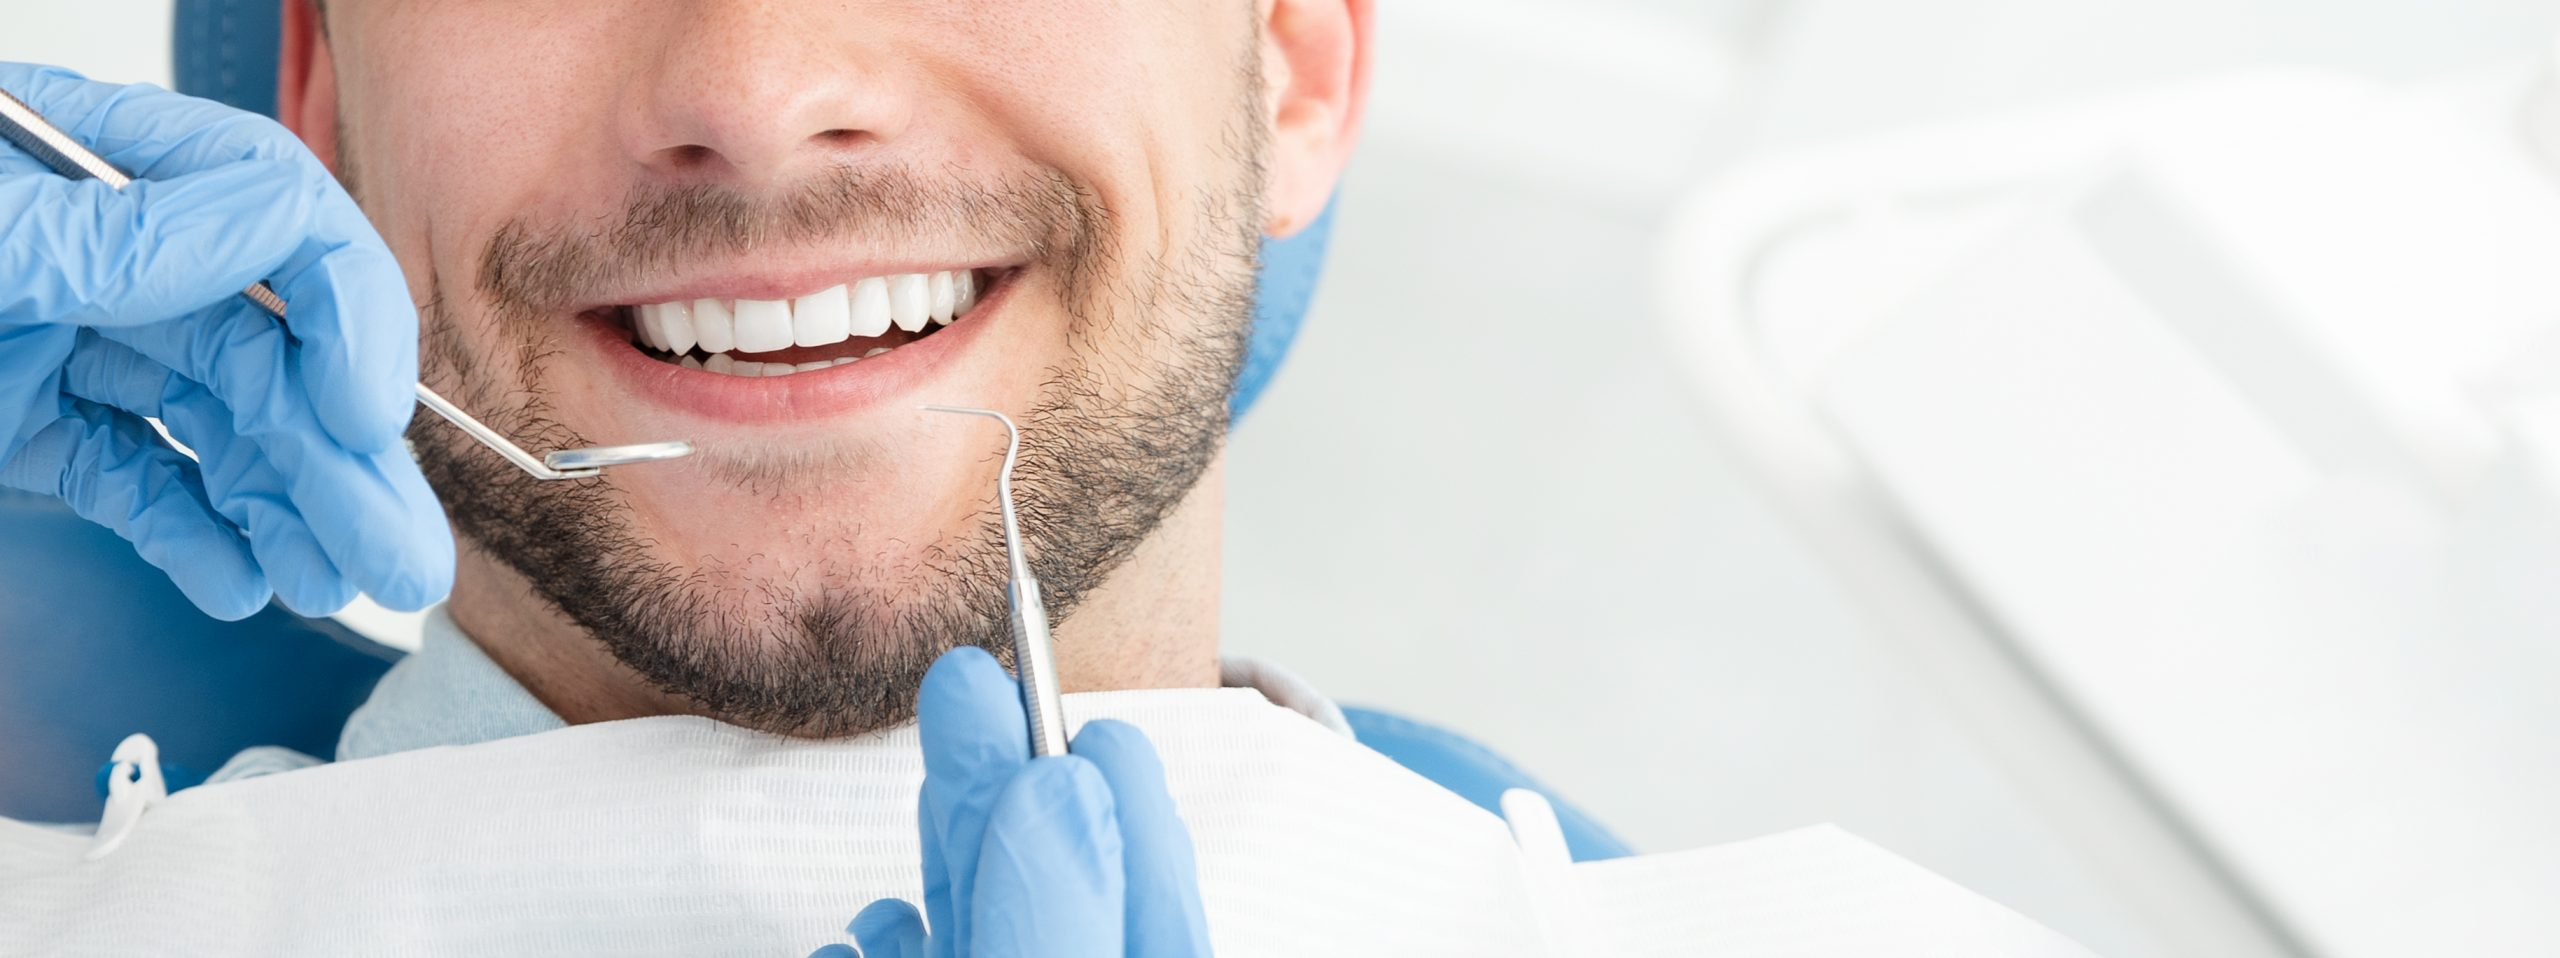 Tooth contouring and shaping